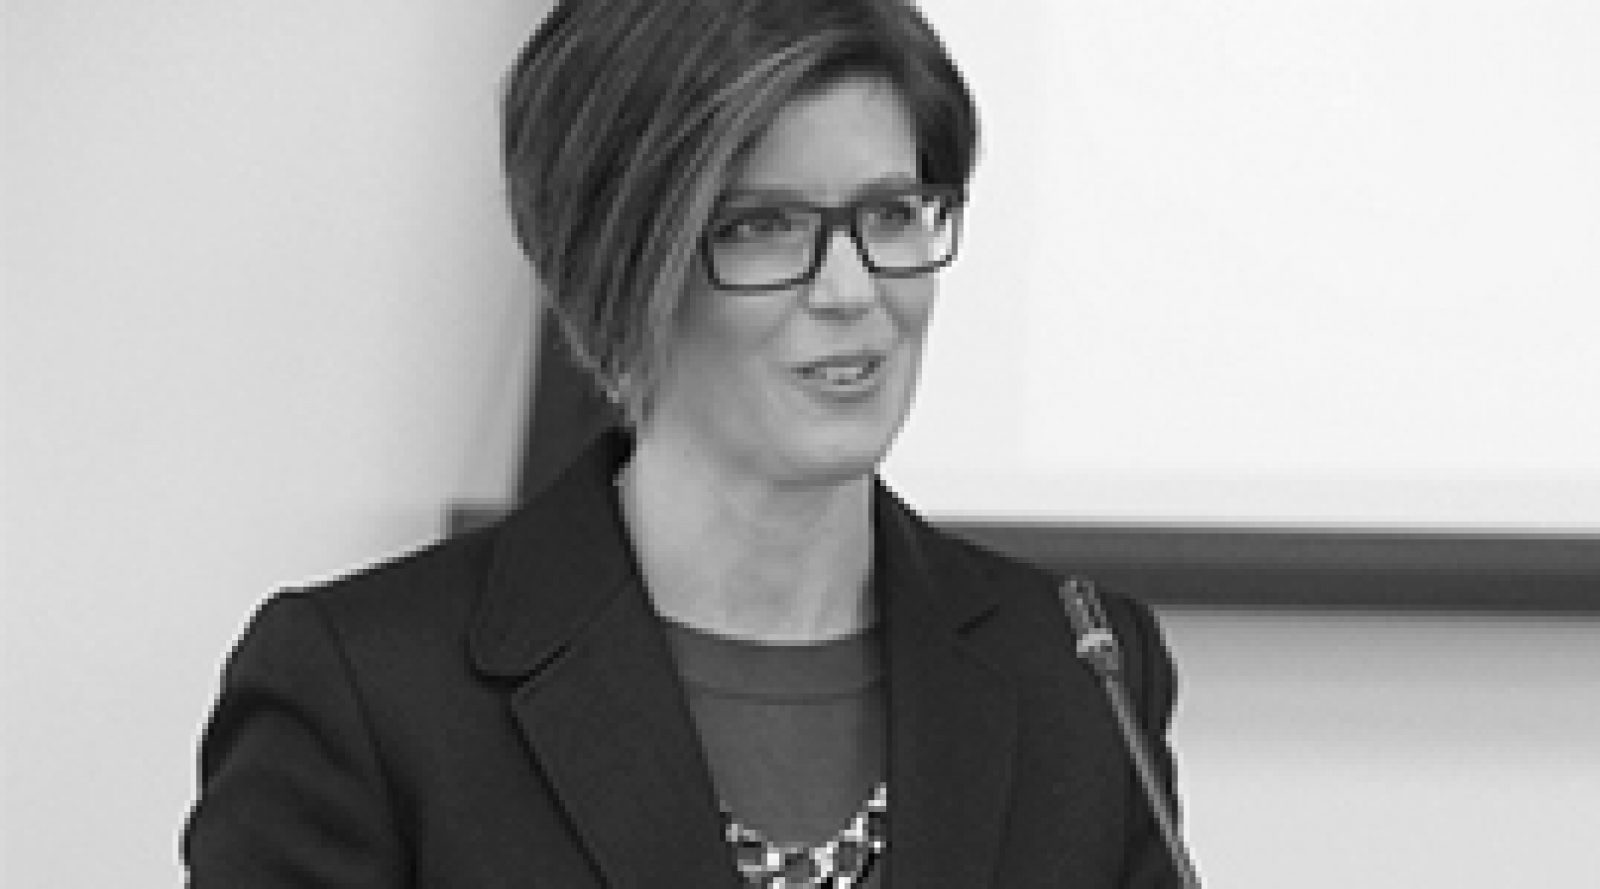 York University executive director-continuing and professional education Tracey Taylor-O'Reilly